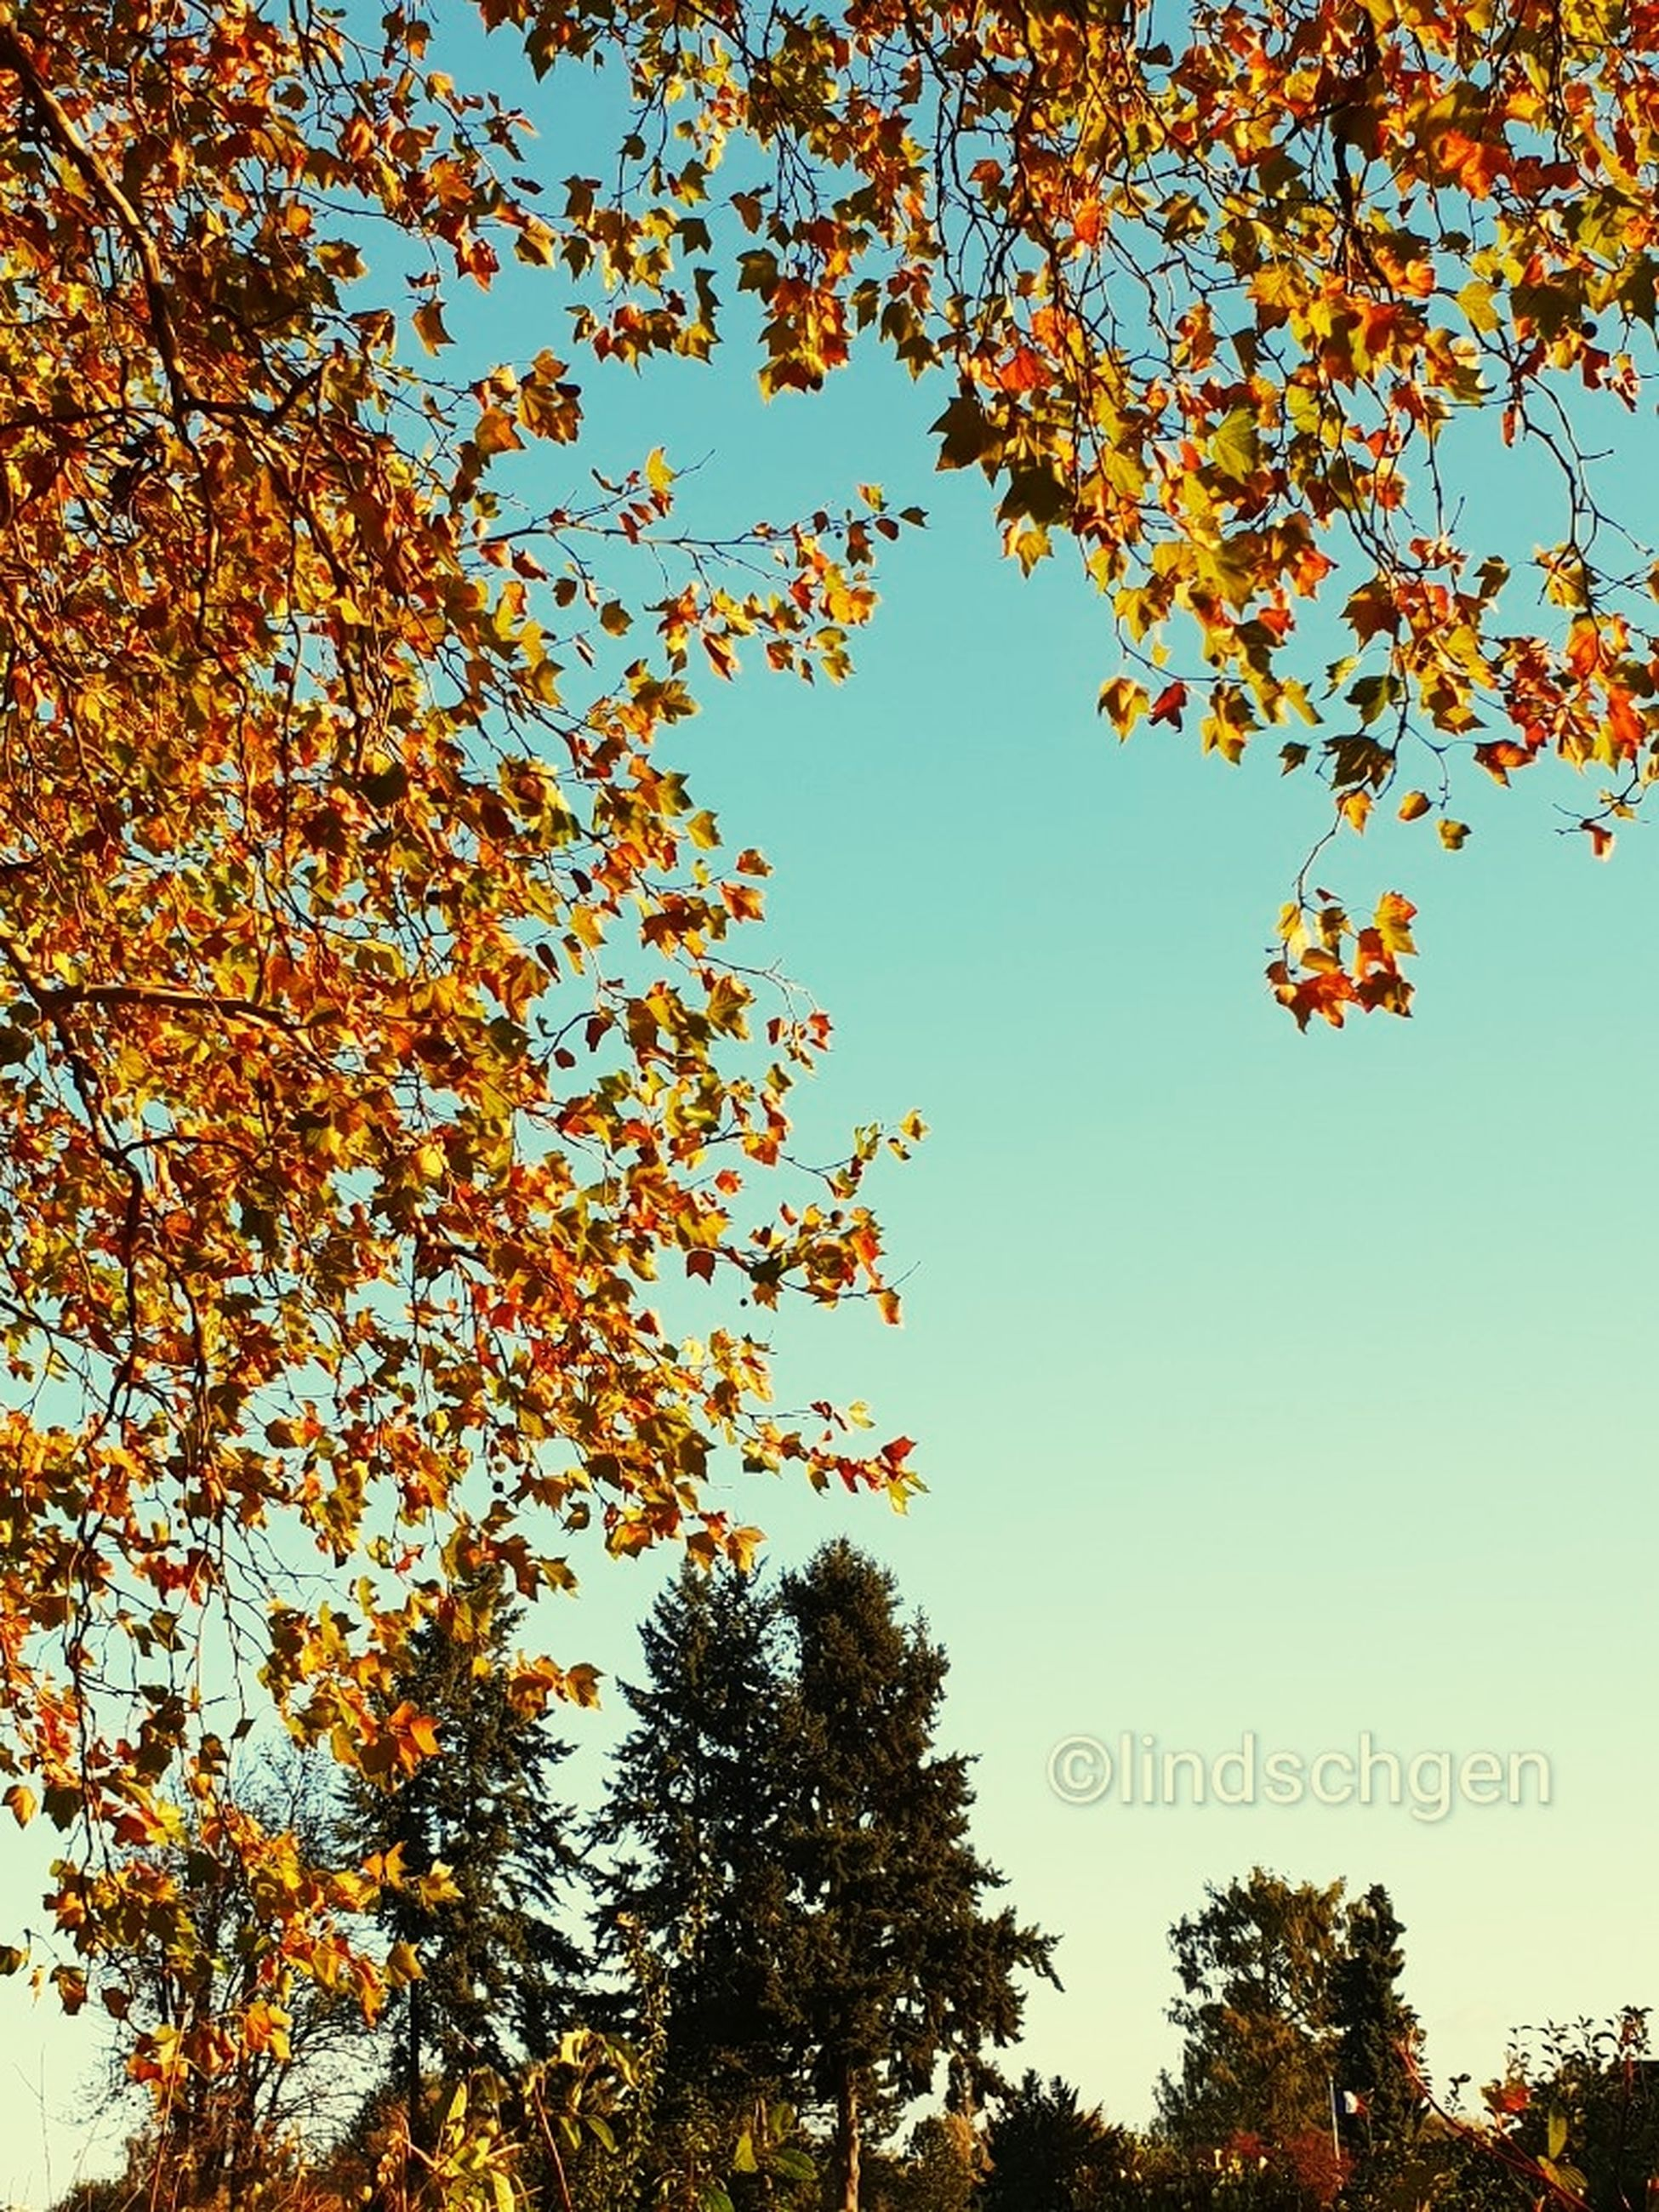 tree, sky, autumn, plant, low angle view, nature, leaf, plant part, beauty in nature, change, clear sky, growth, branch, day, no people, outdoors, tranquility, orange color, text, scenics - nature, leaves